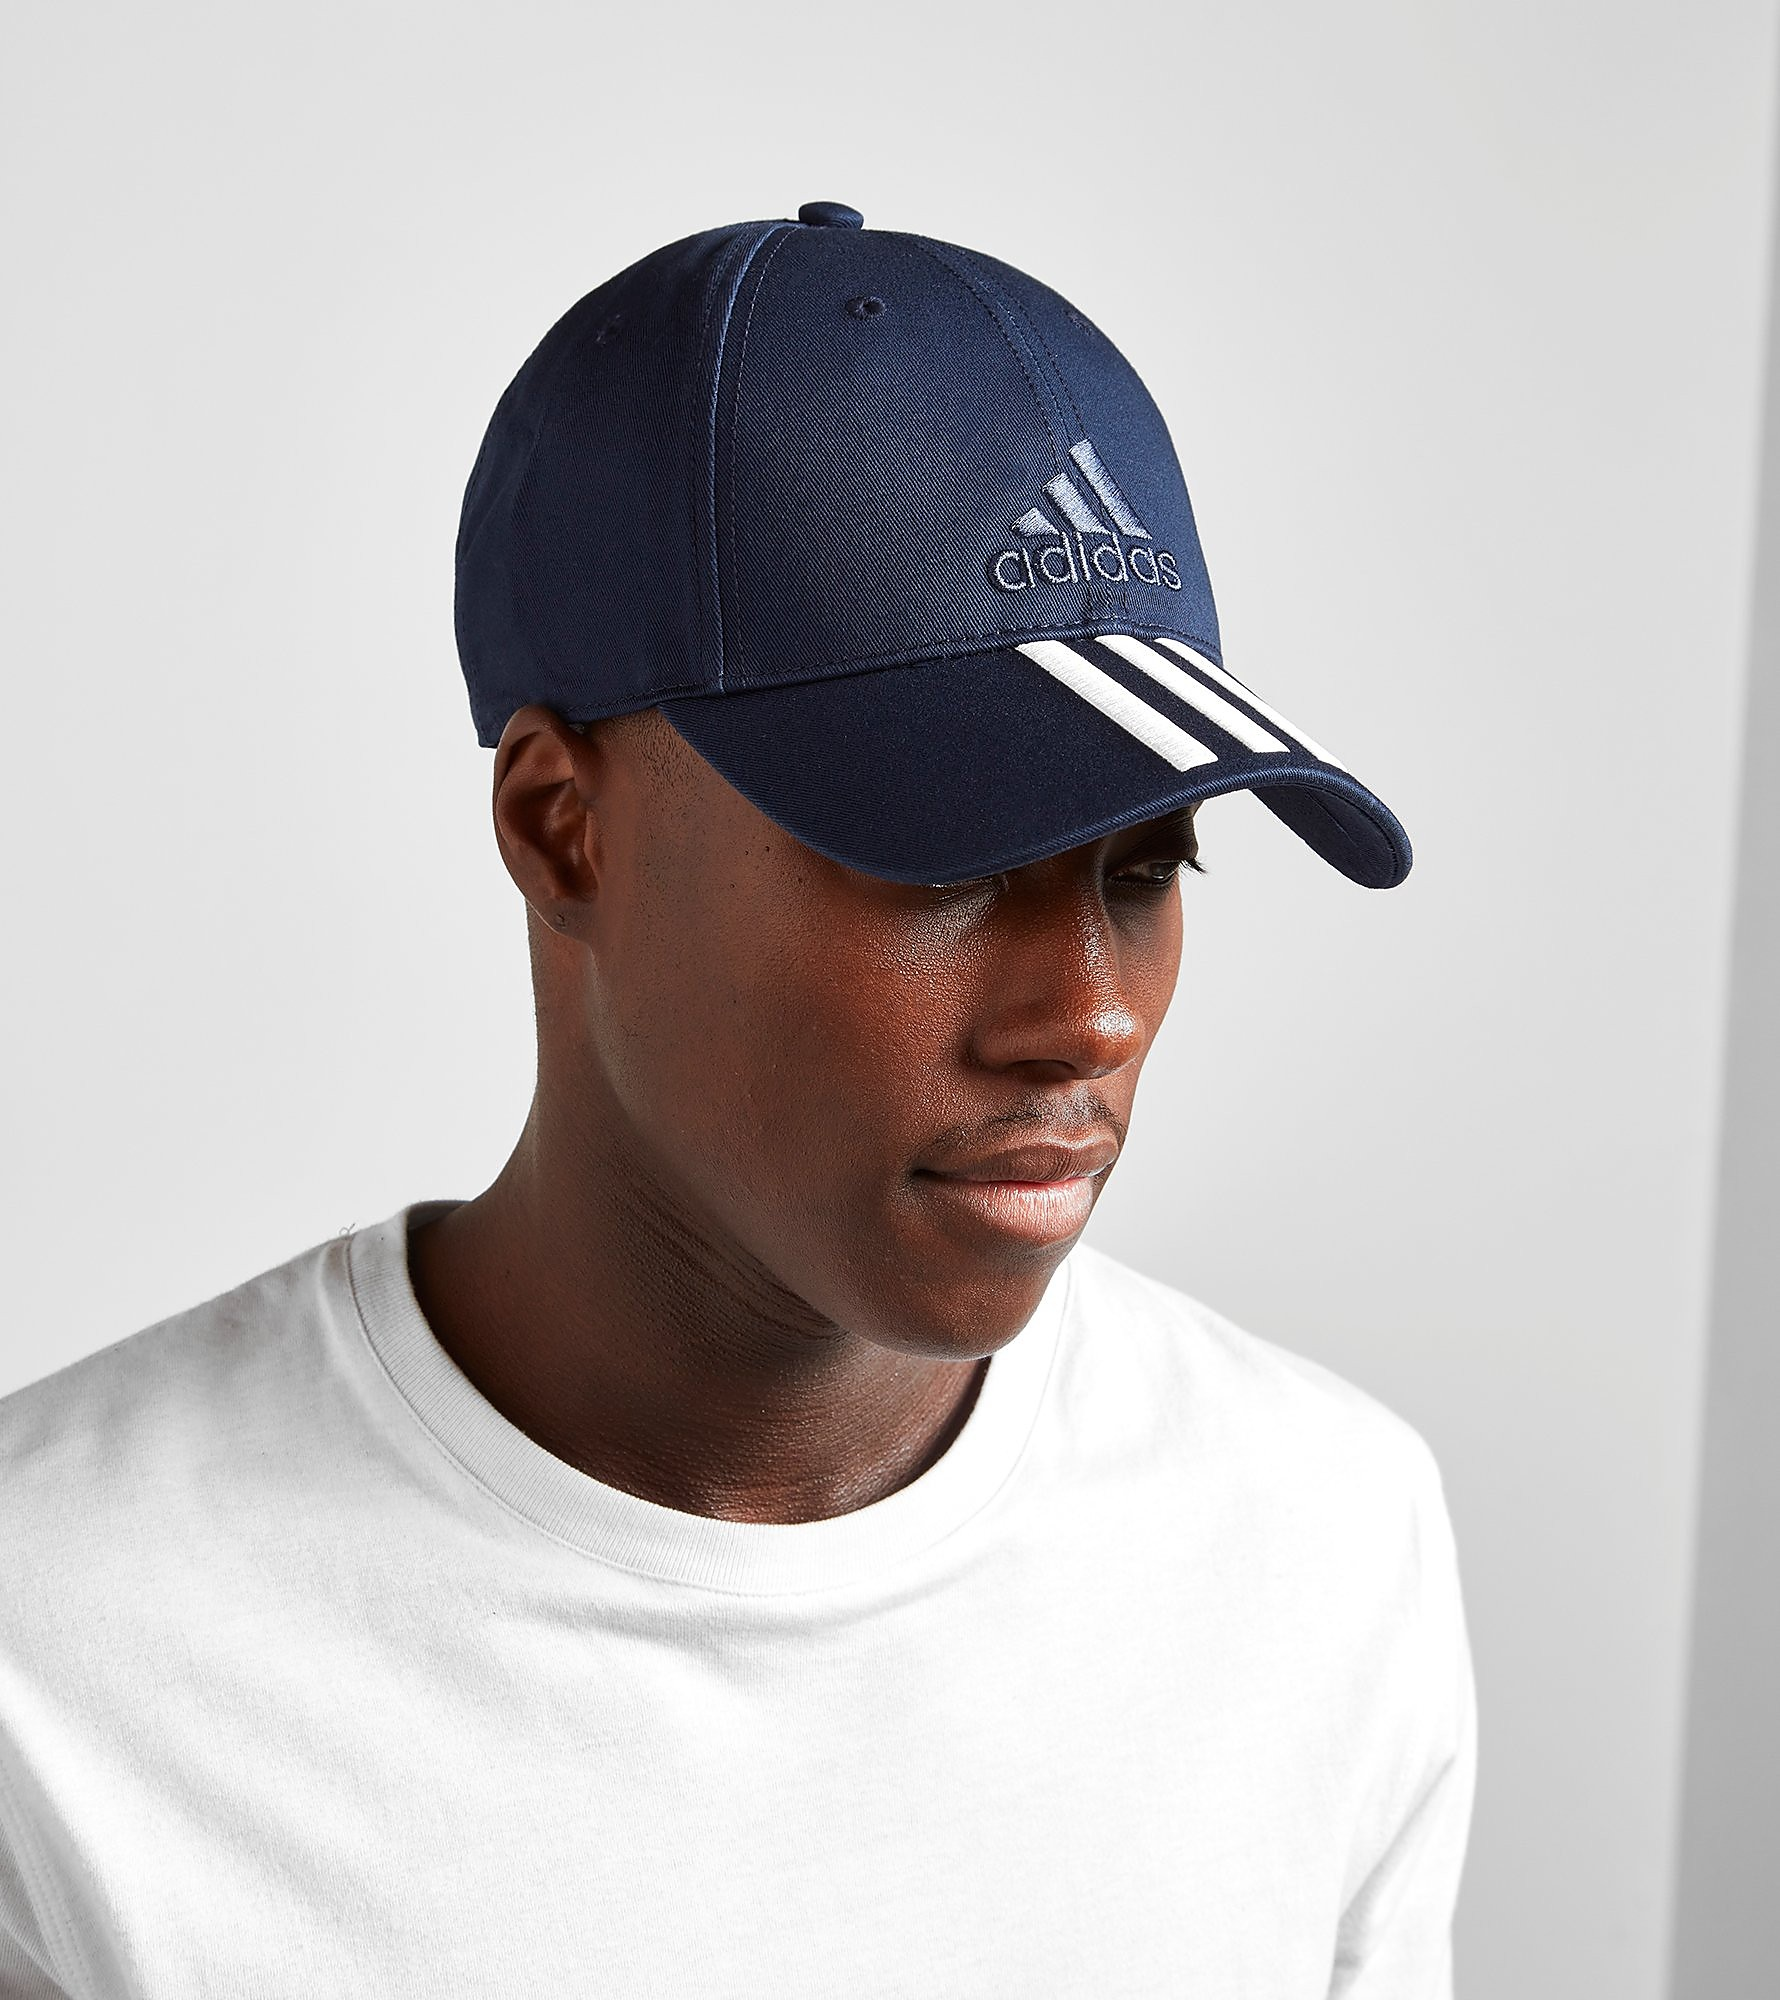 adidas Cotto Curved Strapback Cap